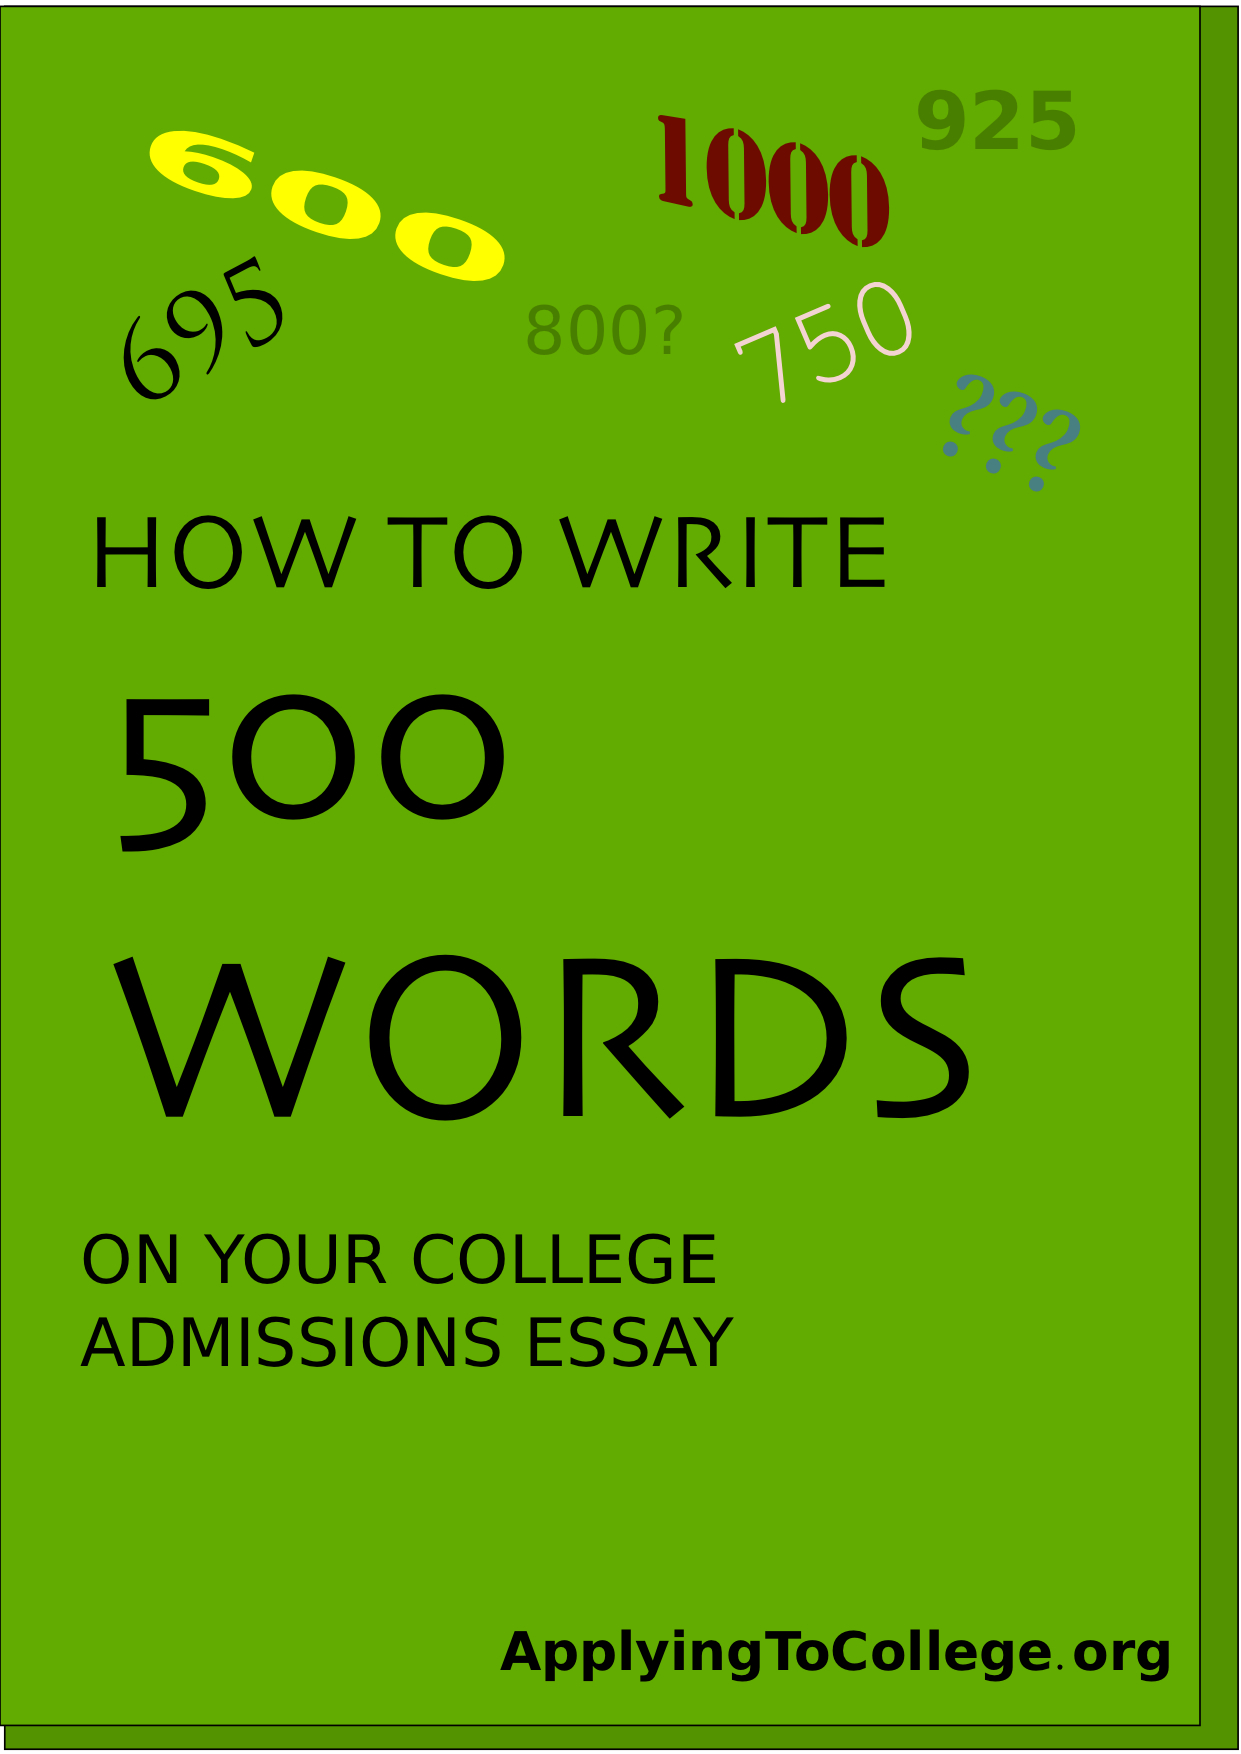 500 word essay example for college